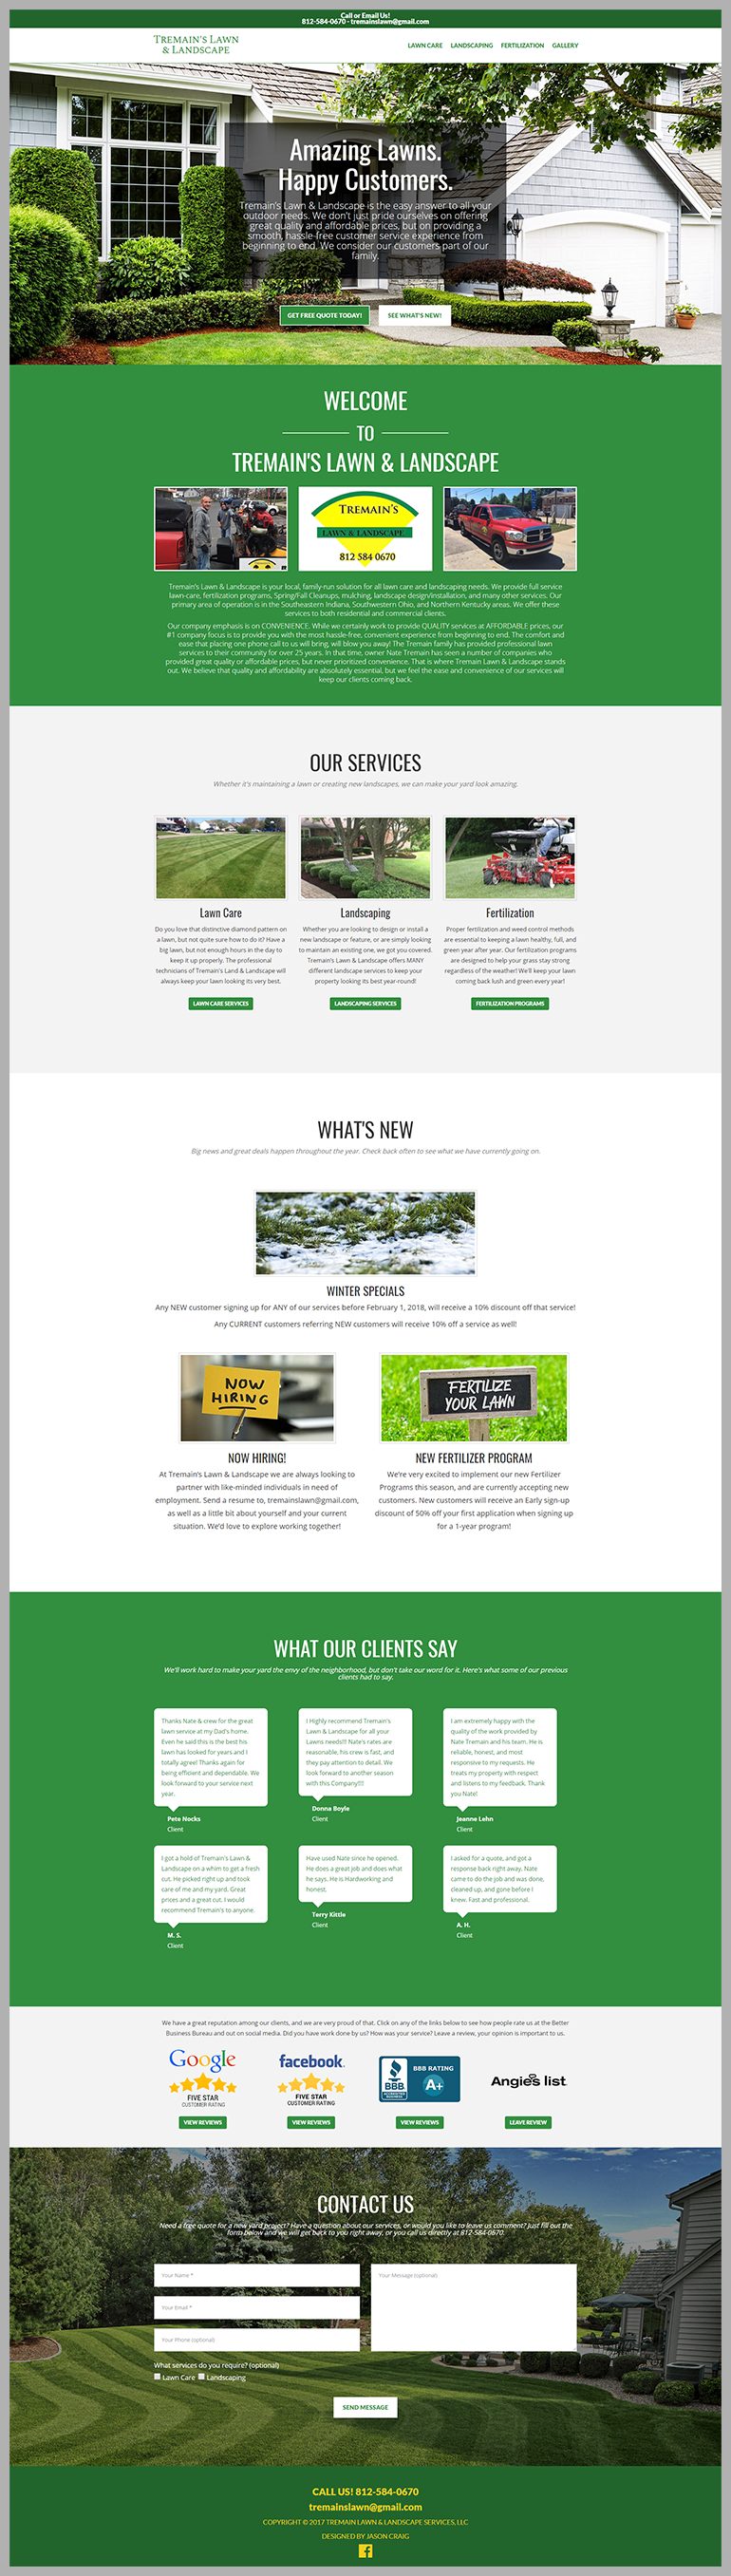 Header section of Tremain's Land and Landscape website.